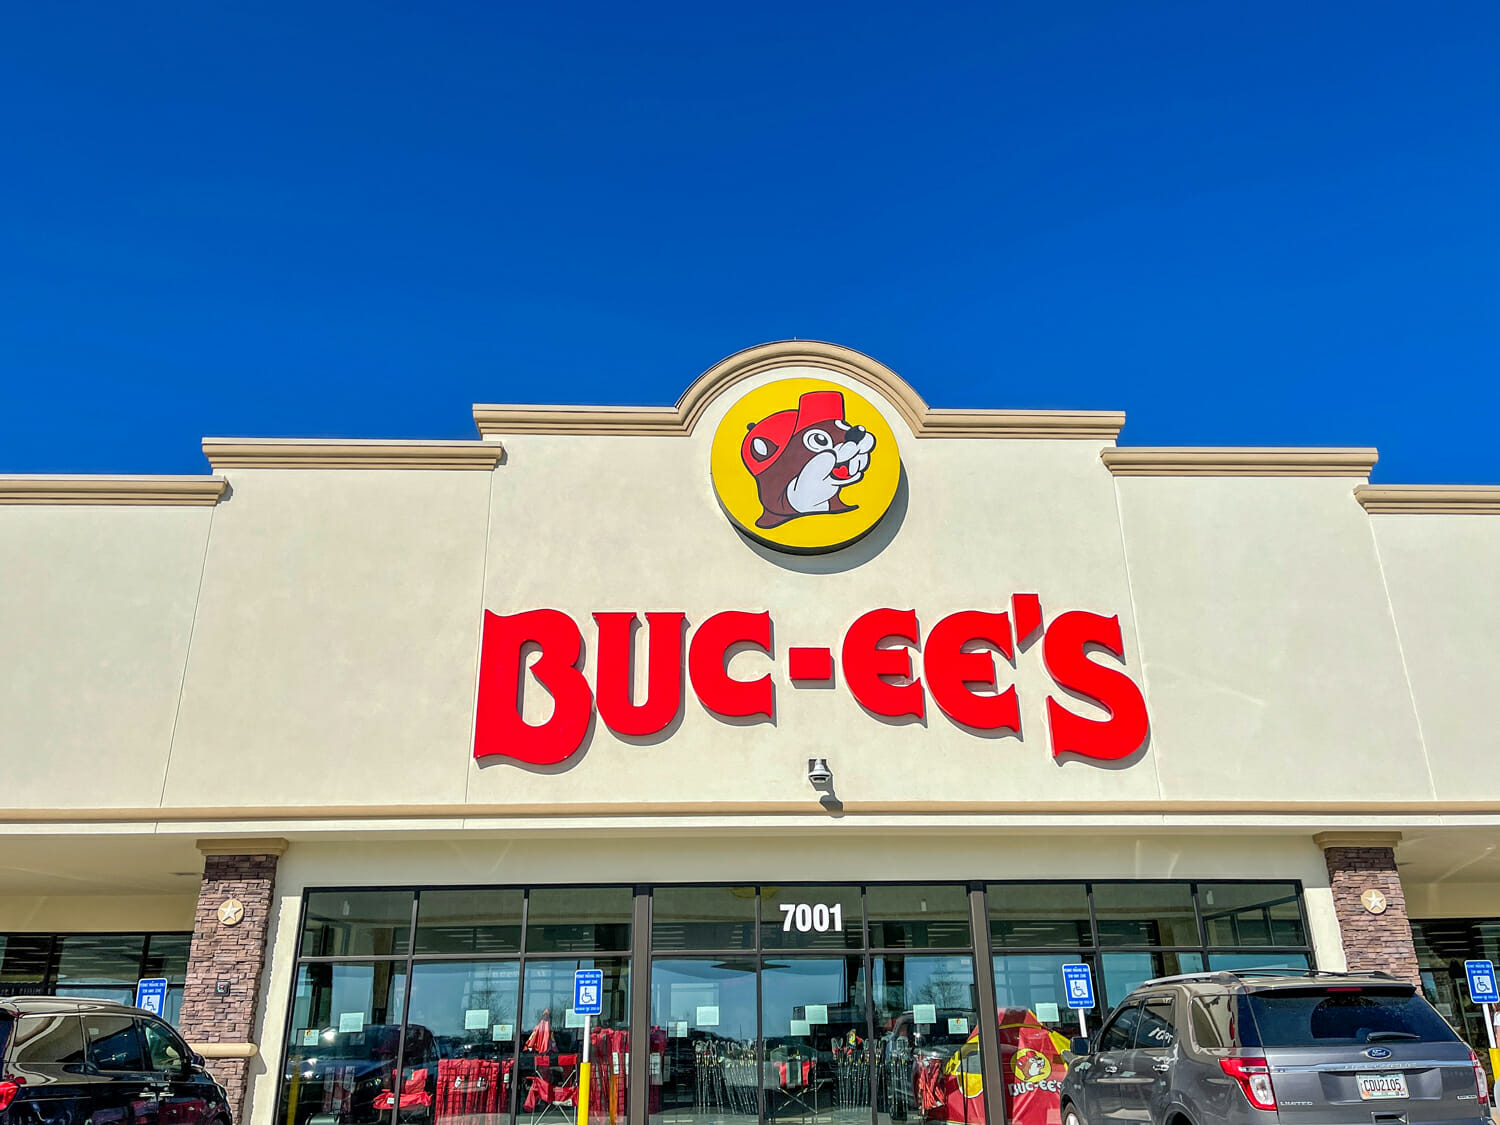 What are the best snacks at Buc-ee's?